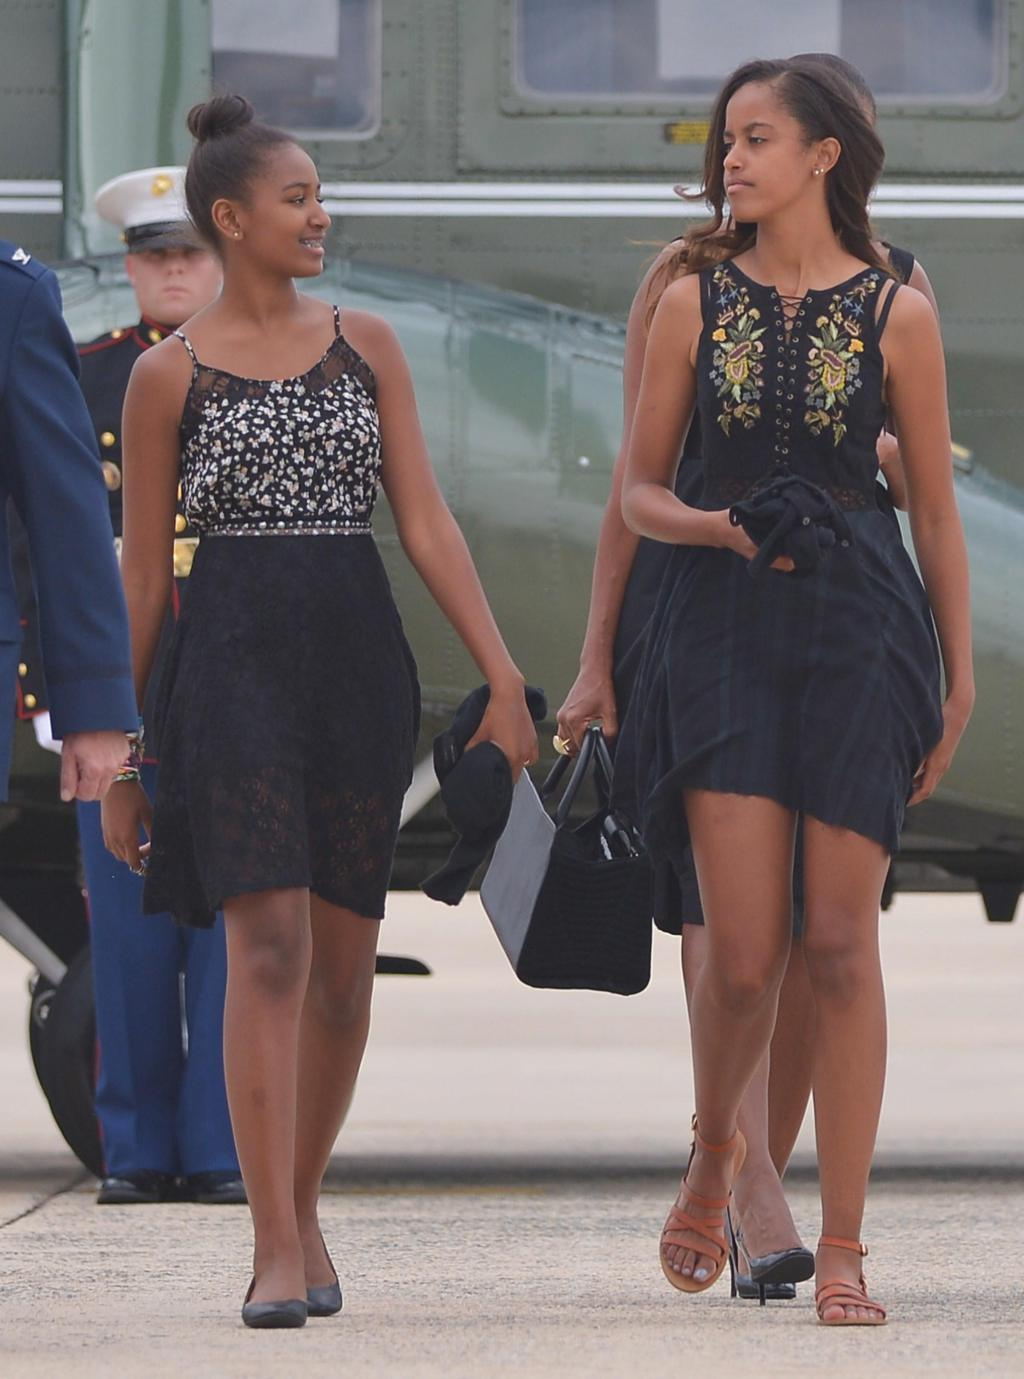 Sasha (L) and Malia (R), the daughters of US President Barack Obama and First Lady Michelle Obama, make their way to board Air Force One before departing from Andrews Air Force Base in Maryland on August 30, 2014. Obama is returning to Westchester County, New York to attend the wedding of his personal chef Sam Kass. AFP PHOTO/Mandel NGAN (Photo credit should read MANDEL NGAN/AFP/Getty Images)